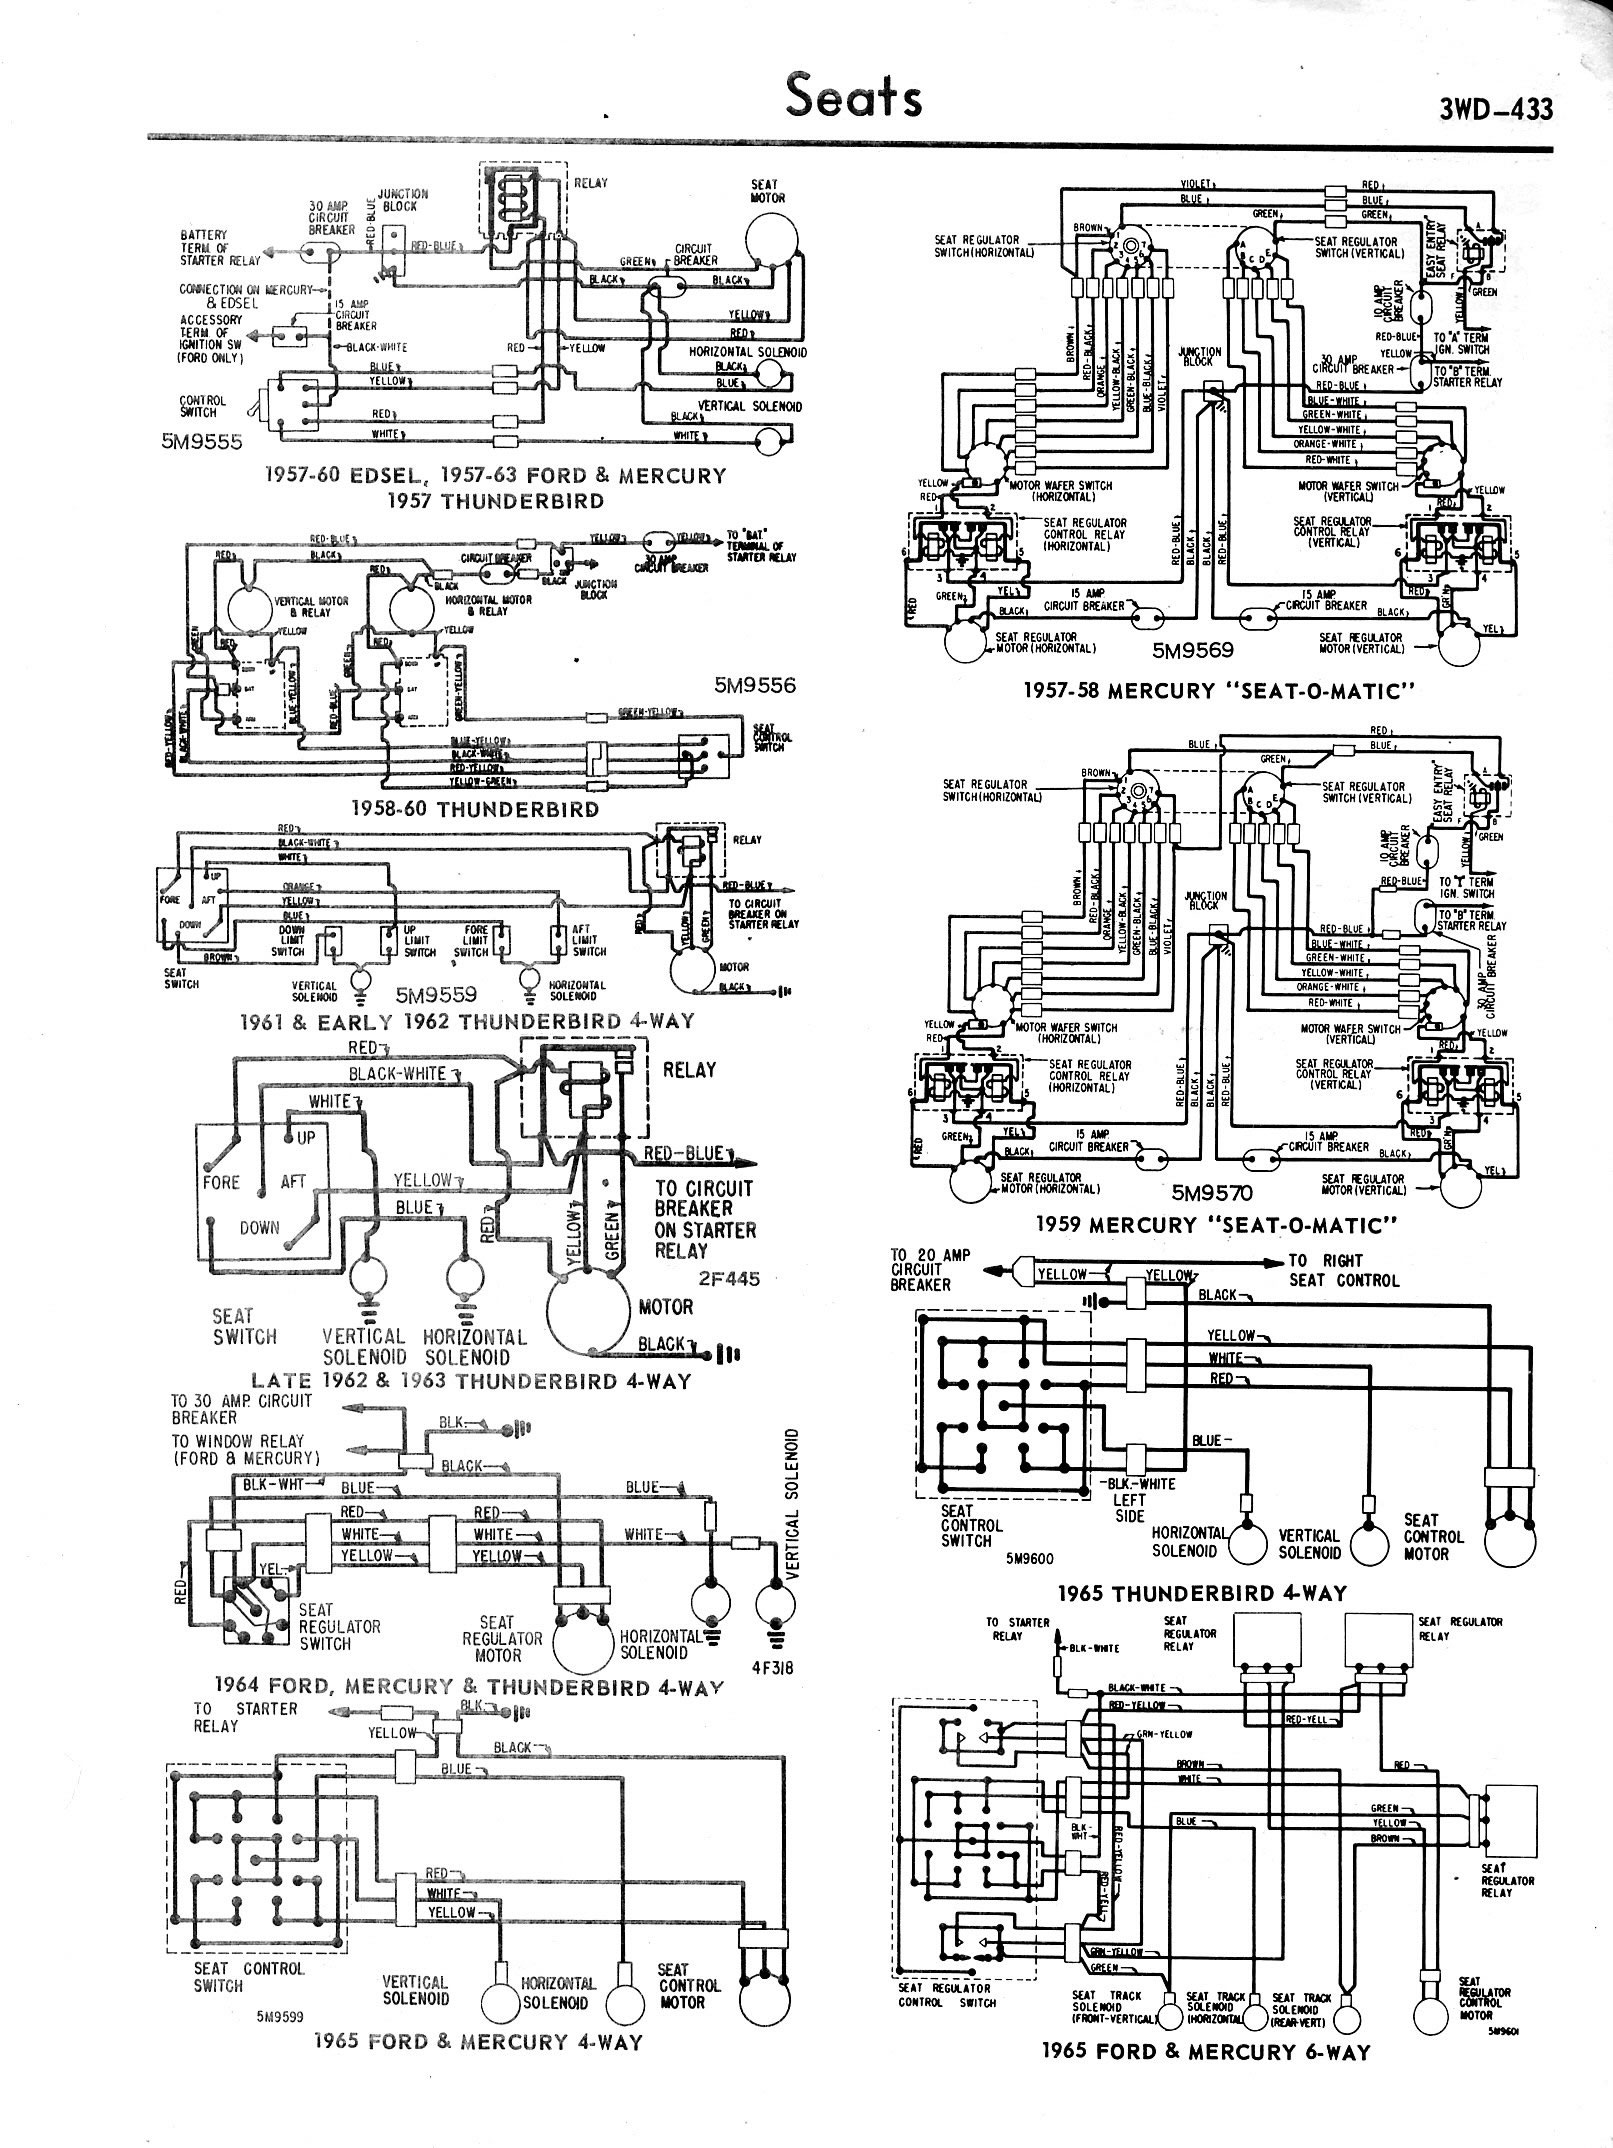 Ford_Diagrams on 1958 Edsel Wiring Diagram